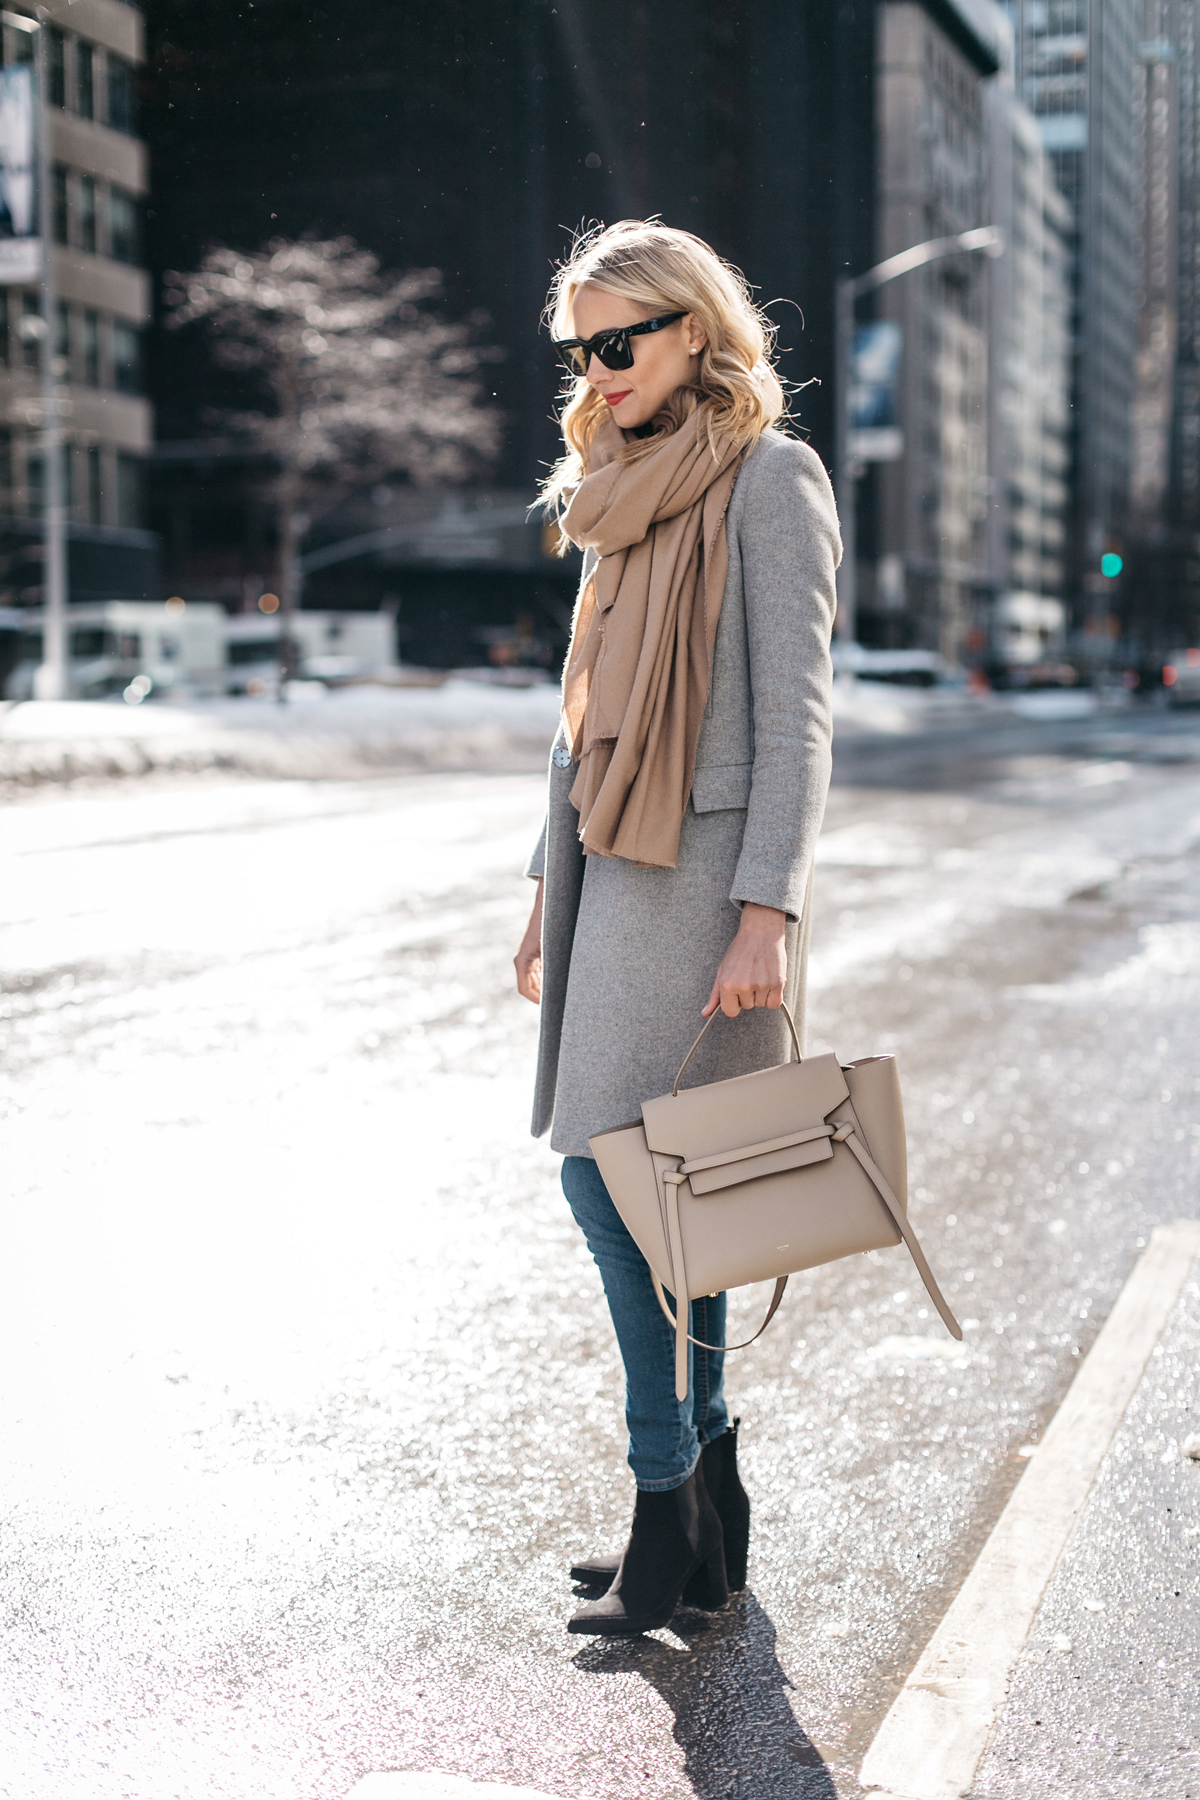 NYFW Fall/Winter 2017, Street Style, Grey Coat, Tan Blanket Scarf, Denim Skinny Jeans, Celine Tie Handbag, Black Ankle Booties